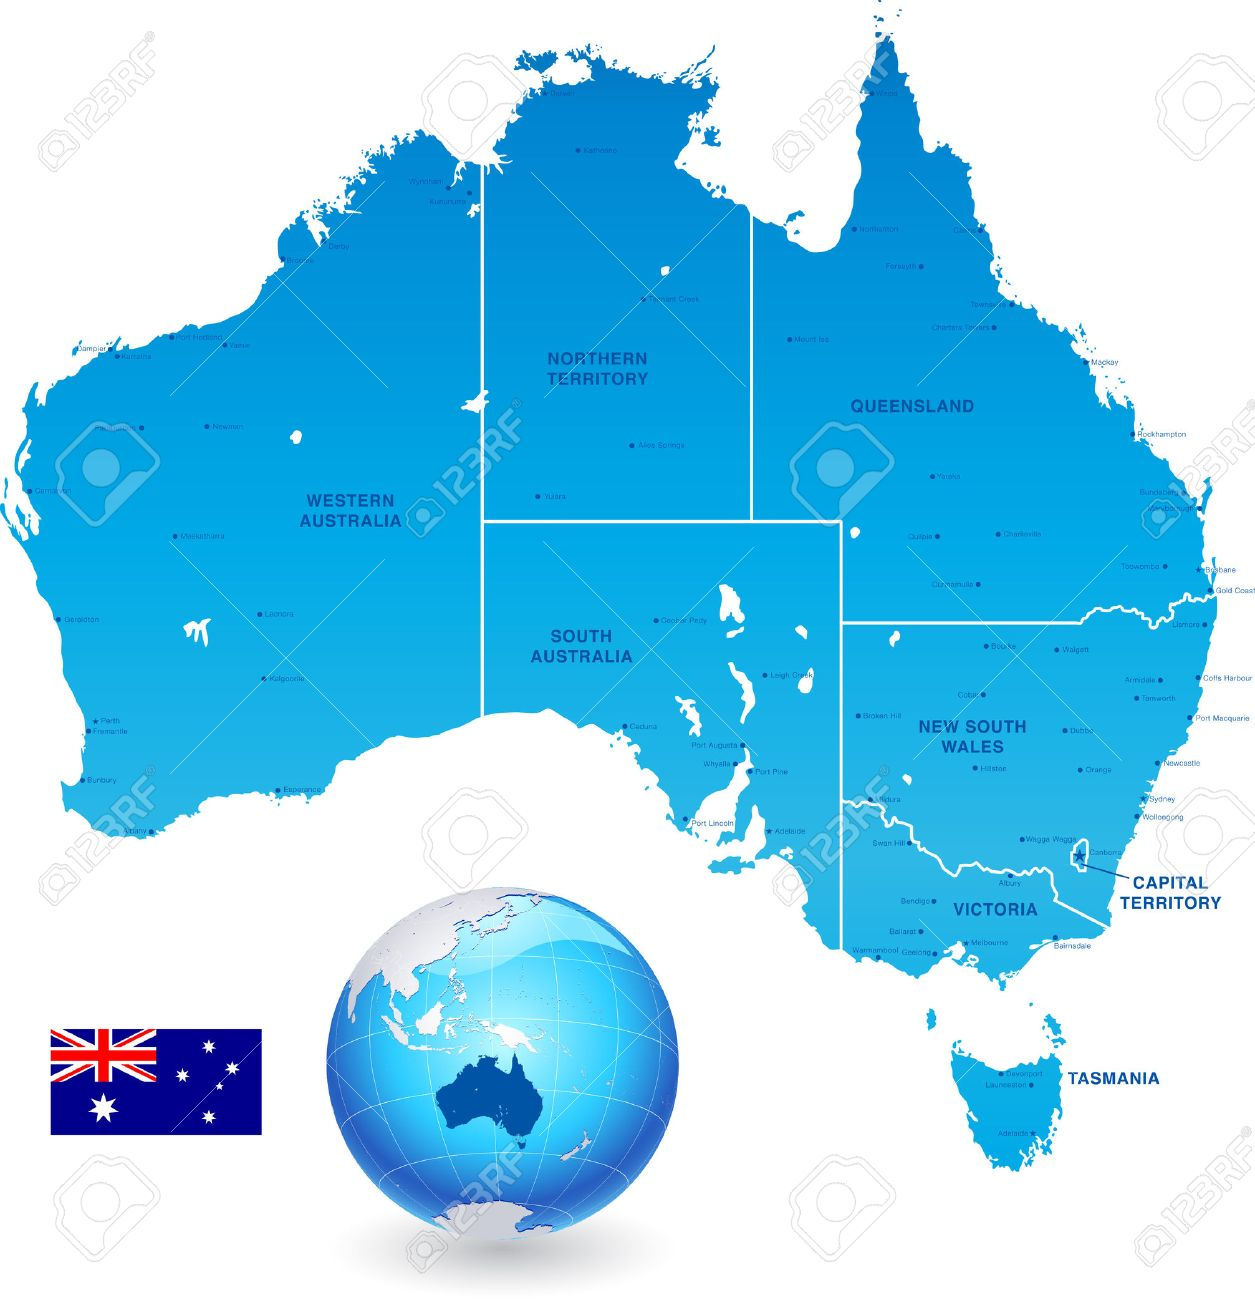 High Detail Vector Map Of Australia With States And Major Cities - Australia major cities map